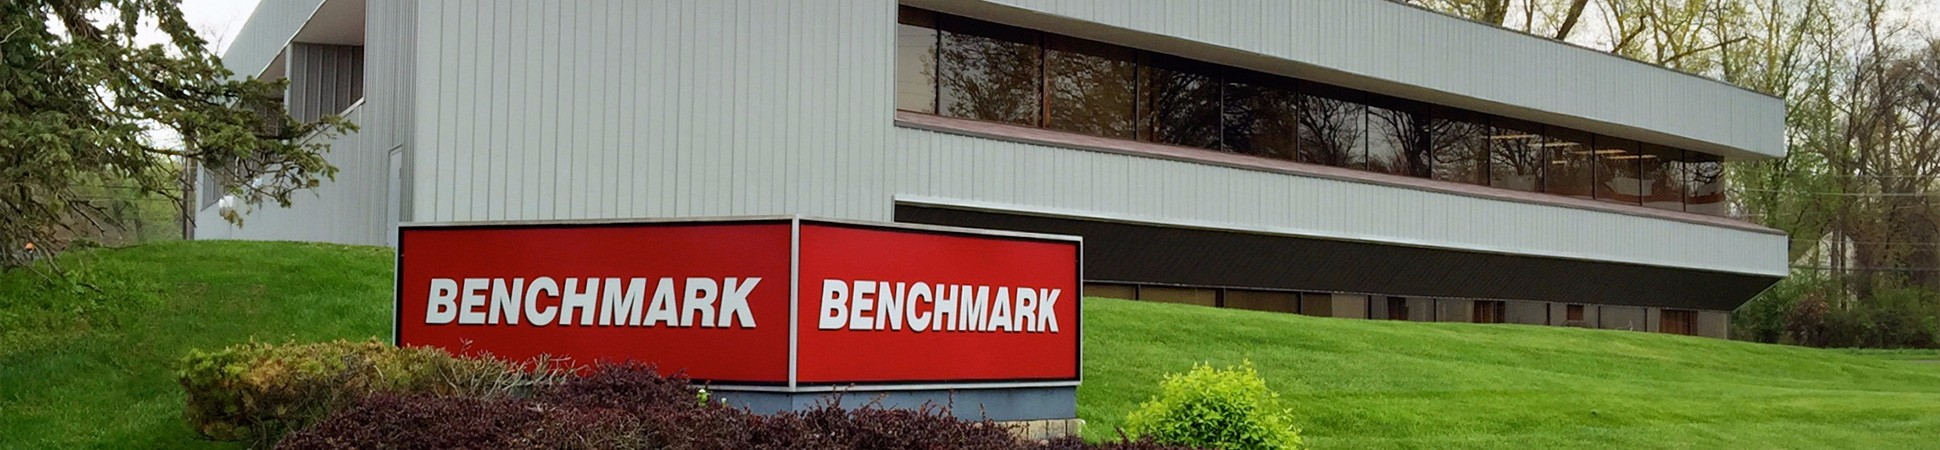 benchmark-corporate-hq